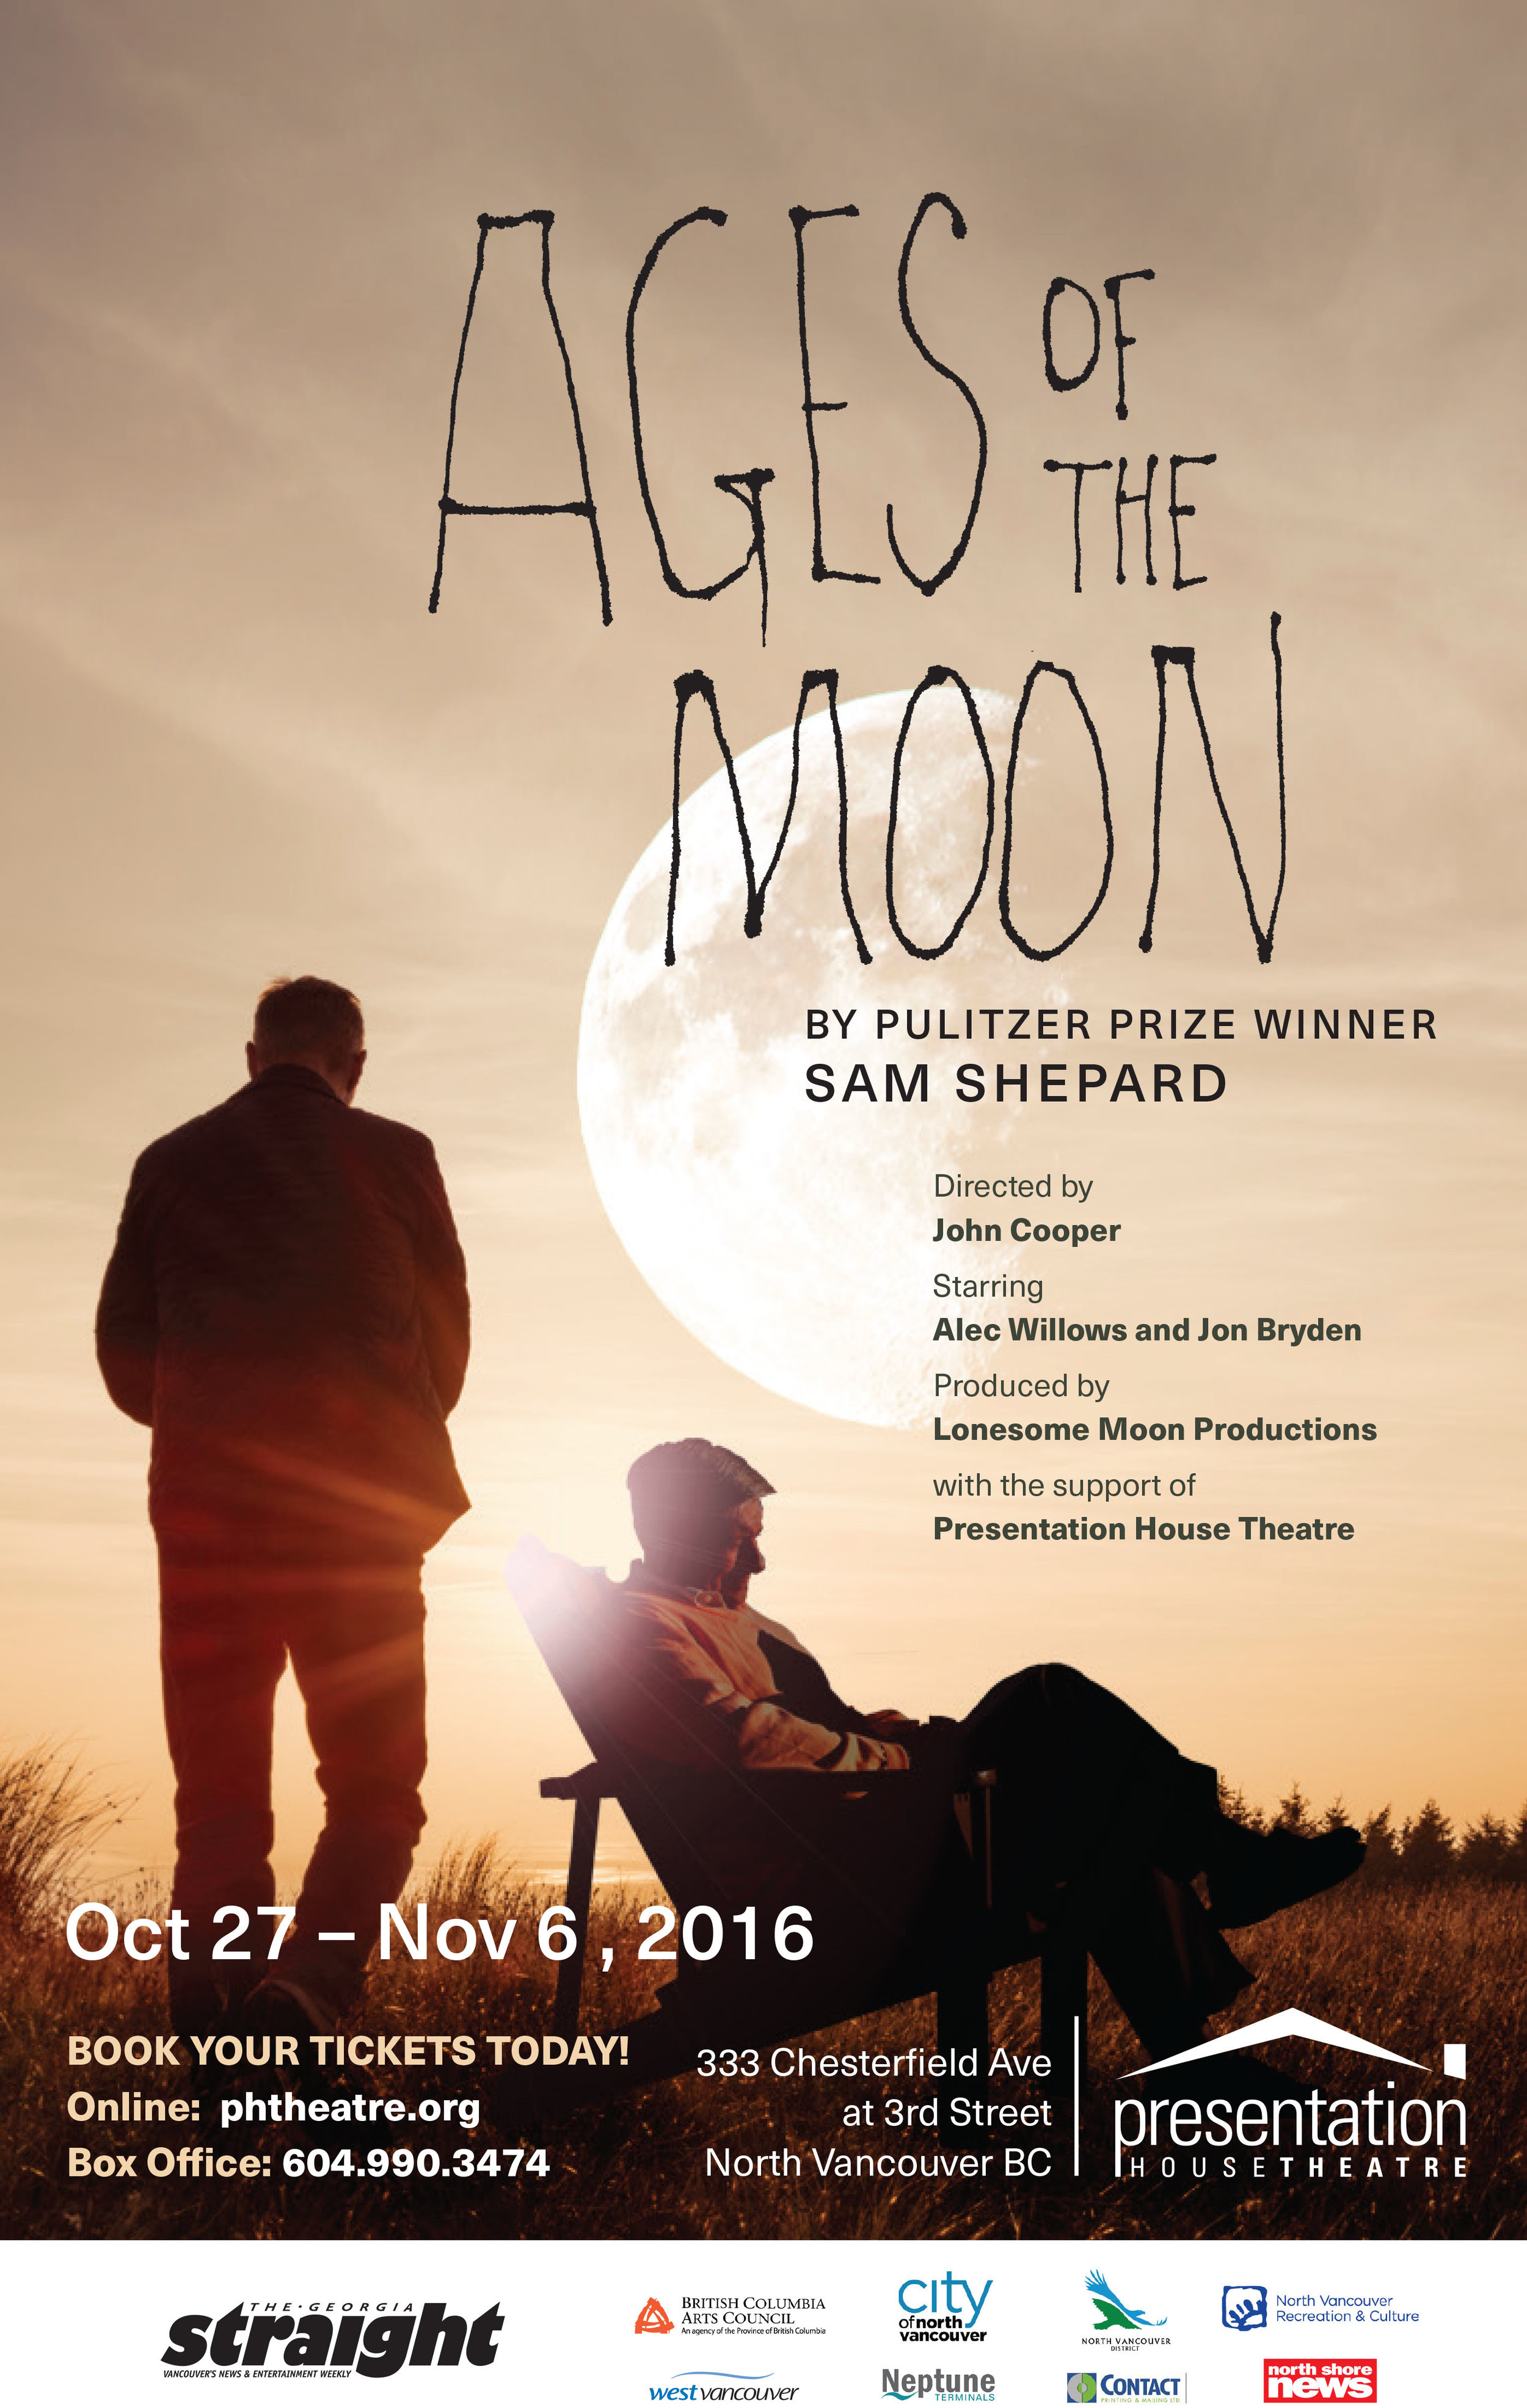 PHT_Ages of the moon 11 x17.jpg